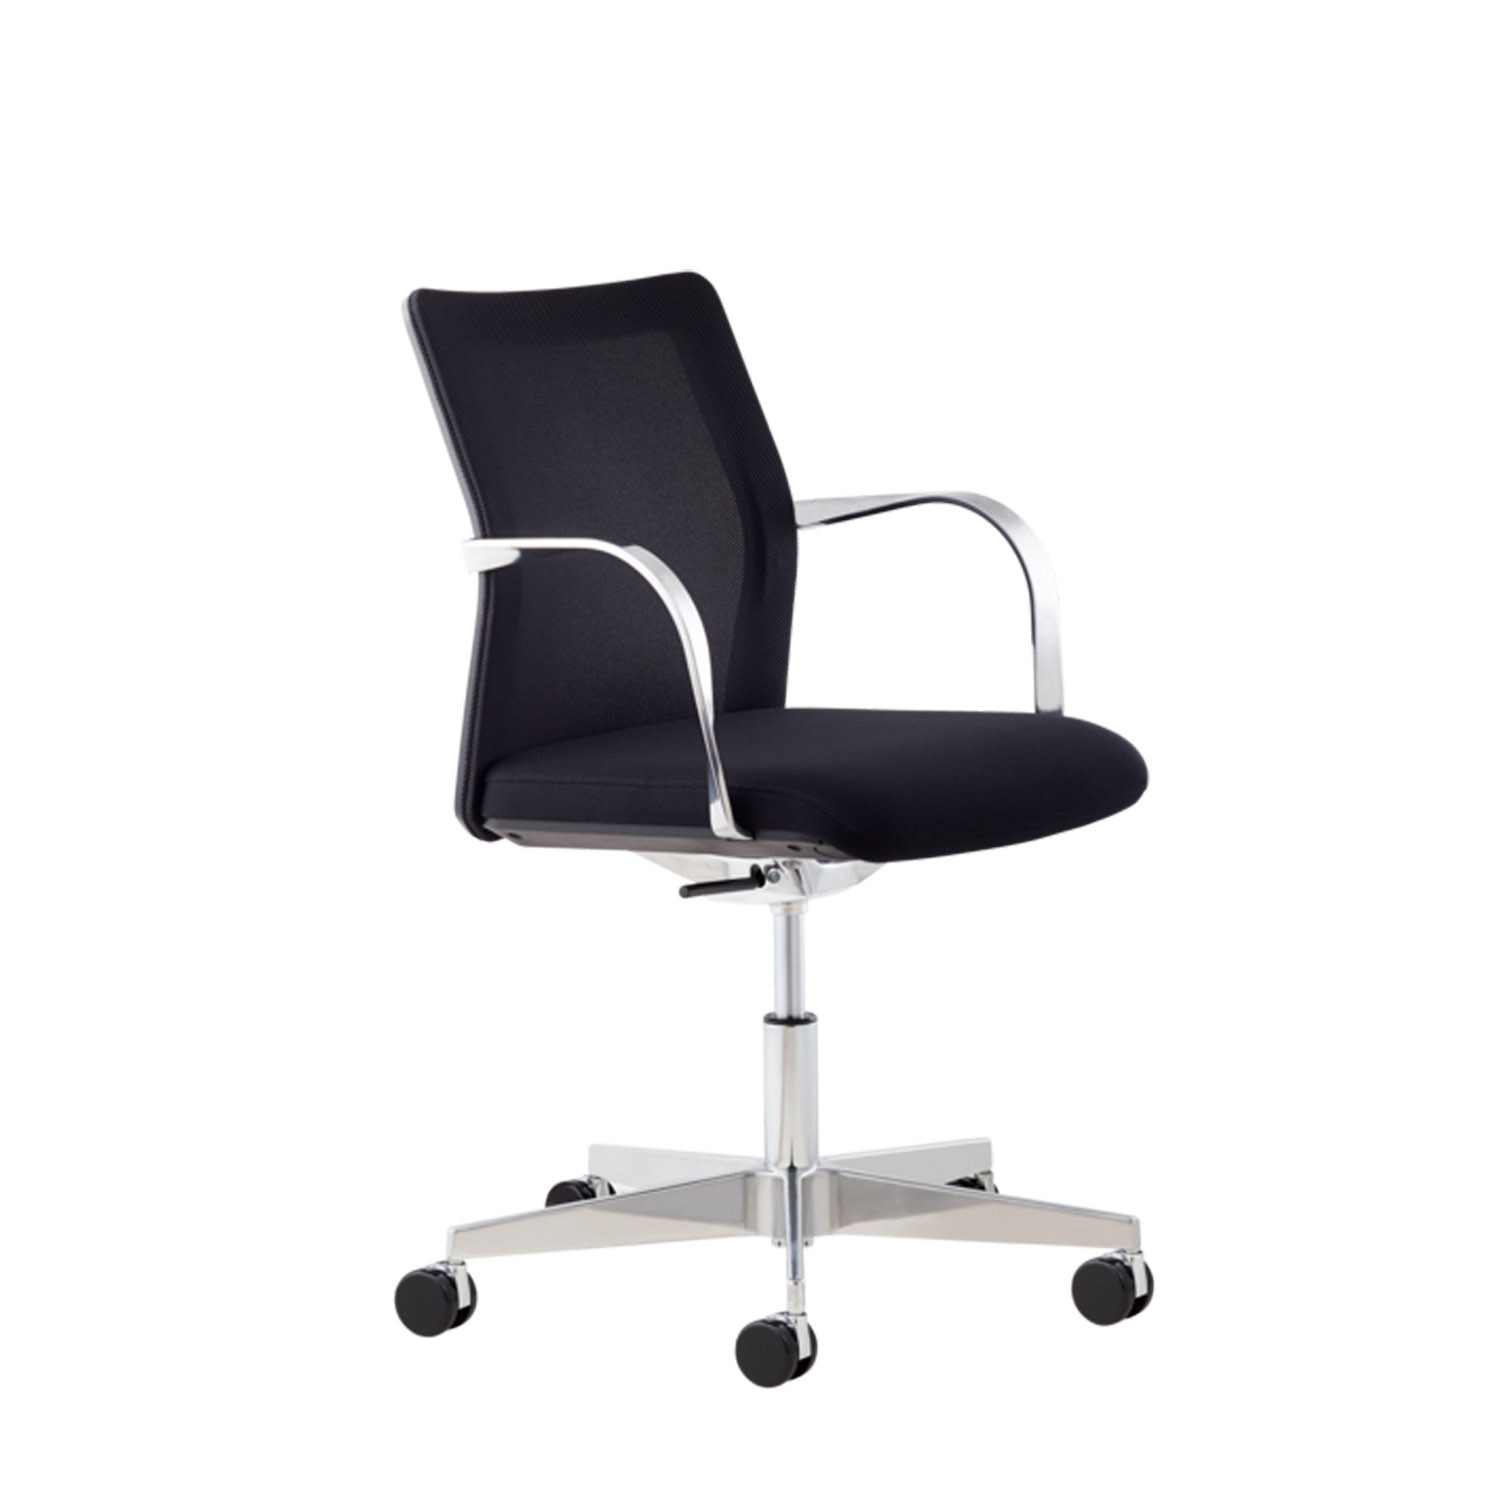 MN1 5-Star Chair with Castors